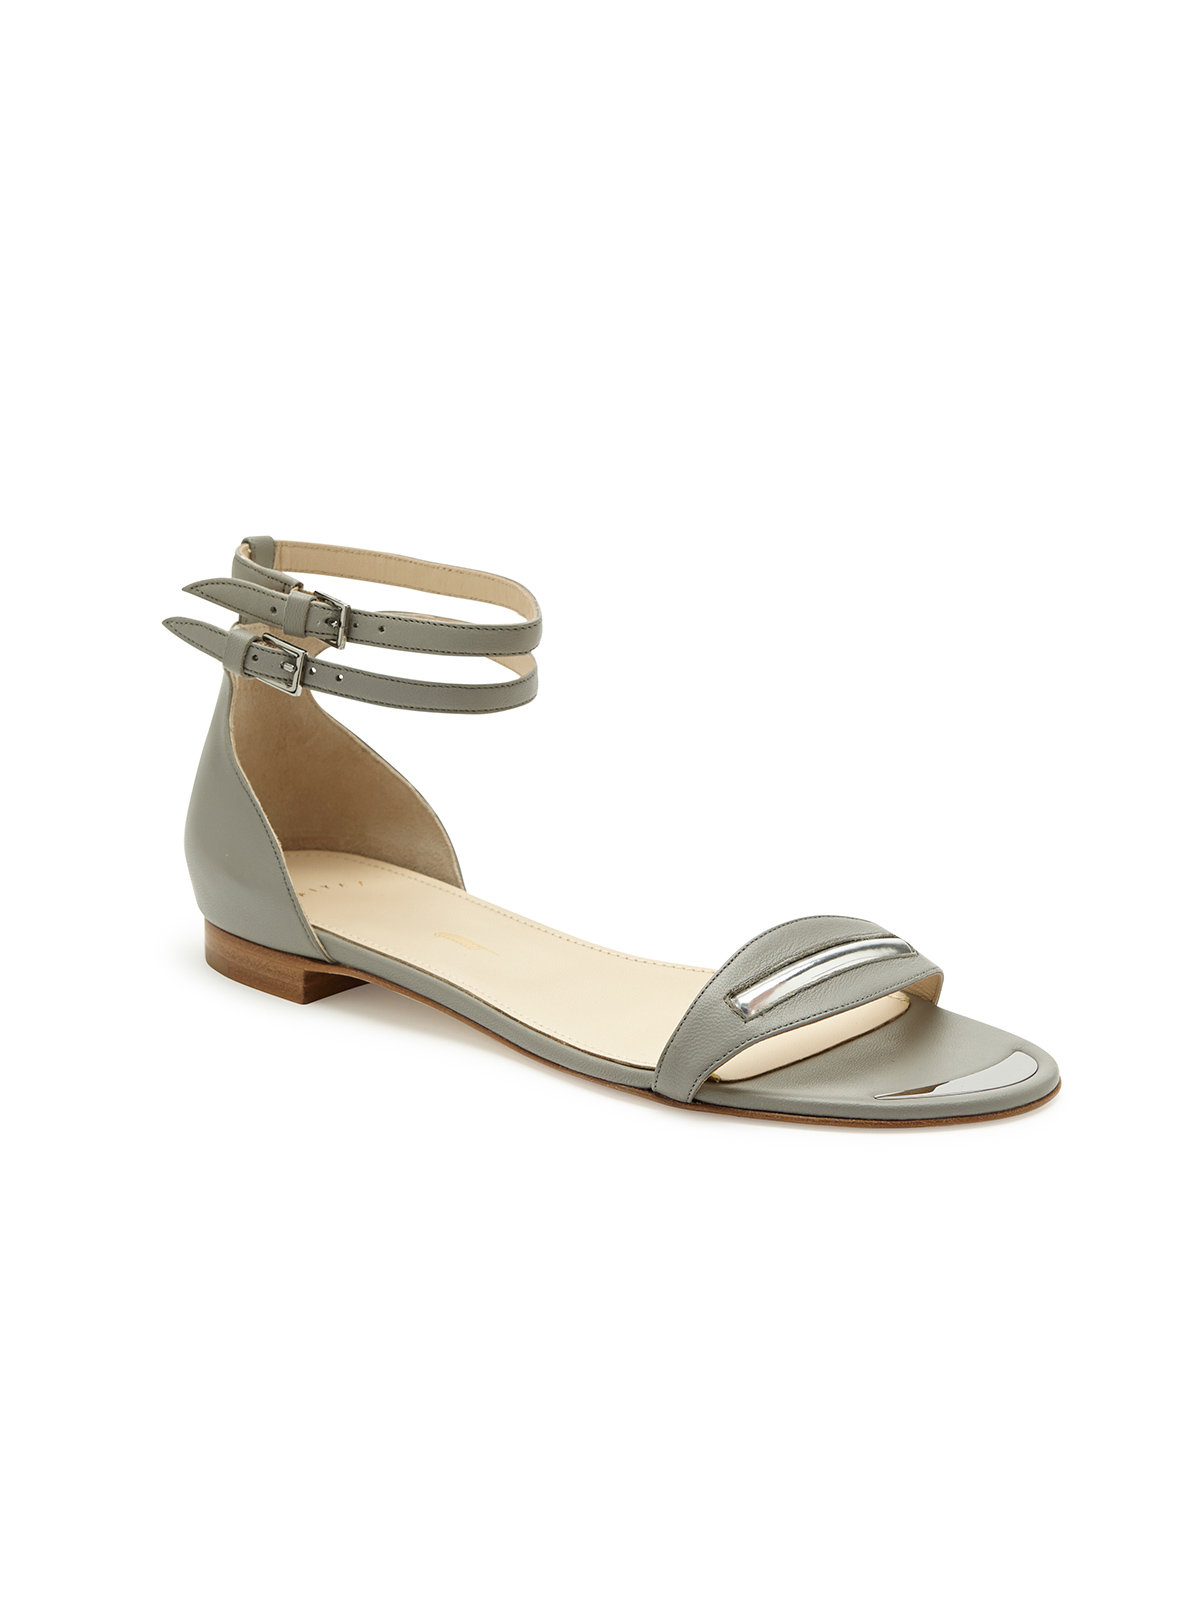 Maiyet Two Tone Double Ankle Strap Flat Sandal In Gray Lyst